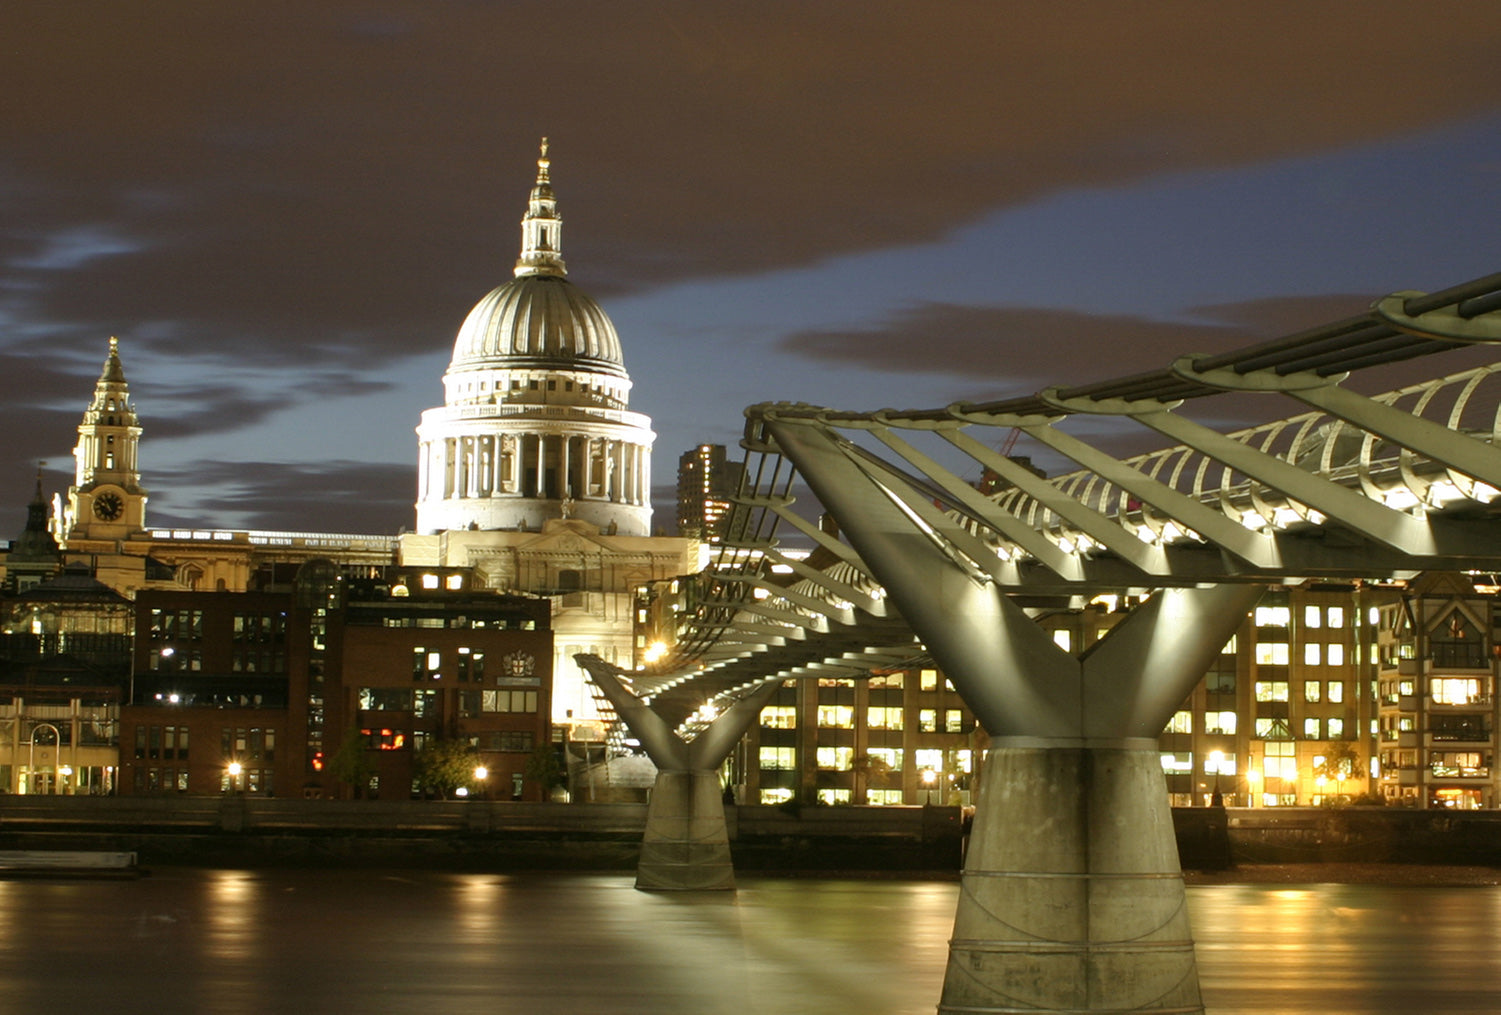 Viewed from The Tate Modern, the Millennium Bridge leads to an illuminated St Pauls Cathedral and London skyline.